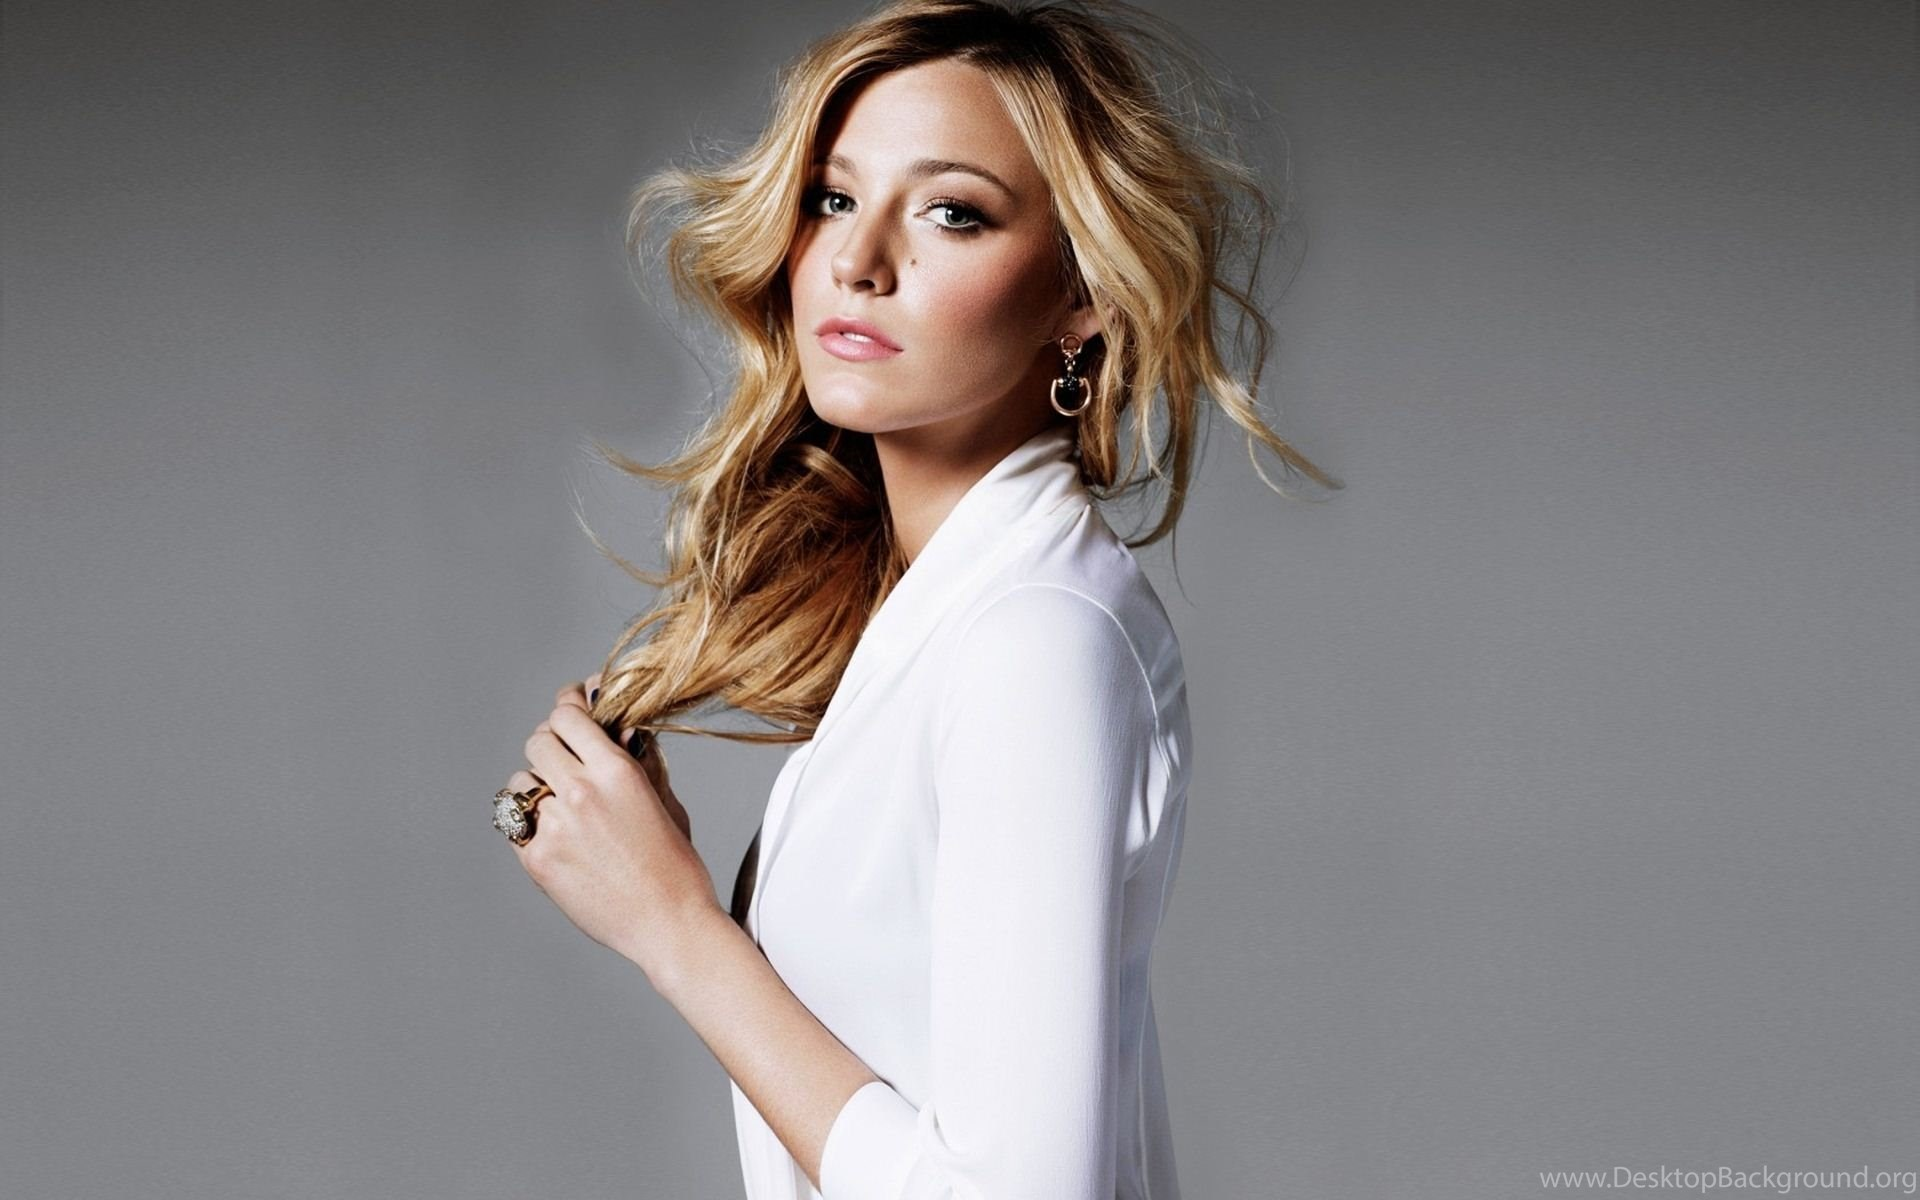 4 blake lively hd wallpaper,images,pictures,photos,hd wallpapers